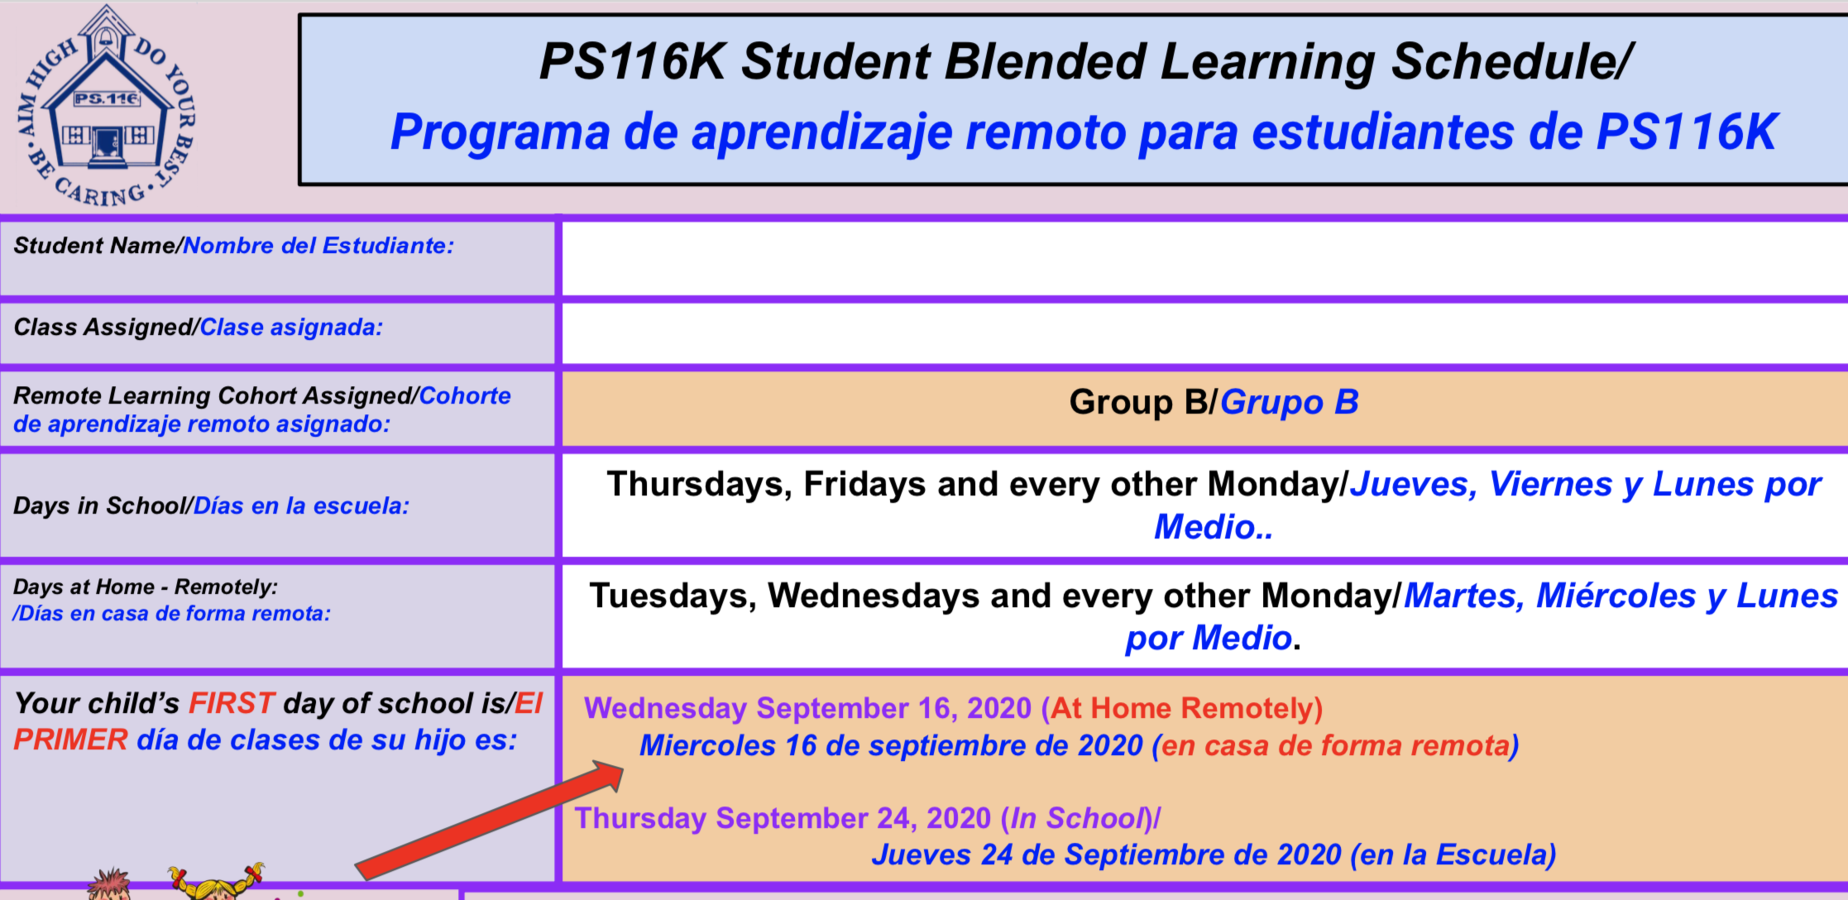 Group B Learning Schedule